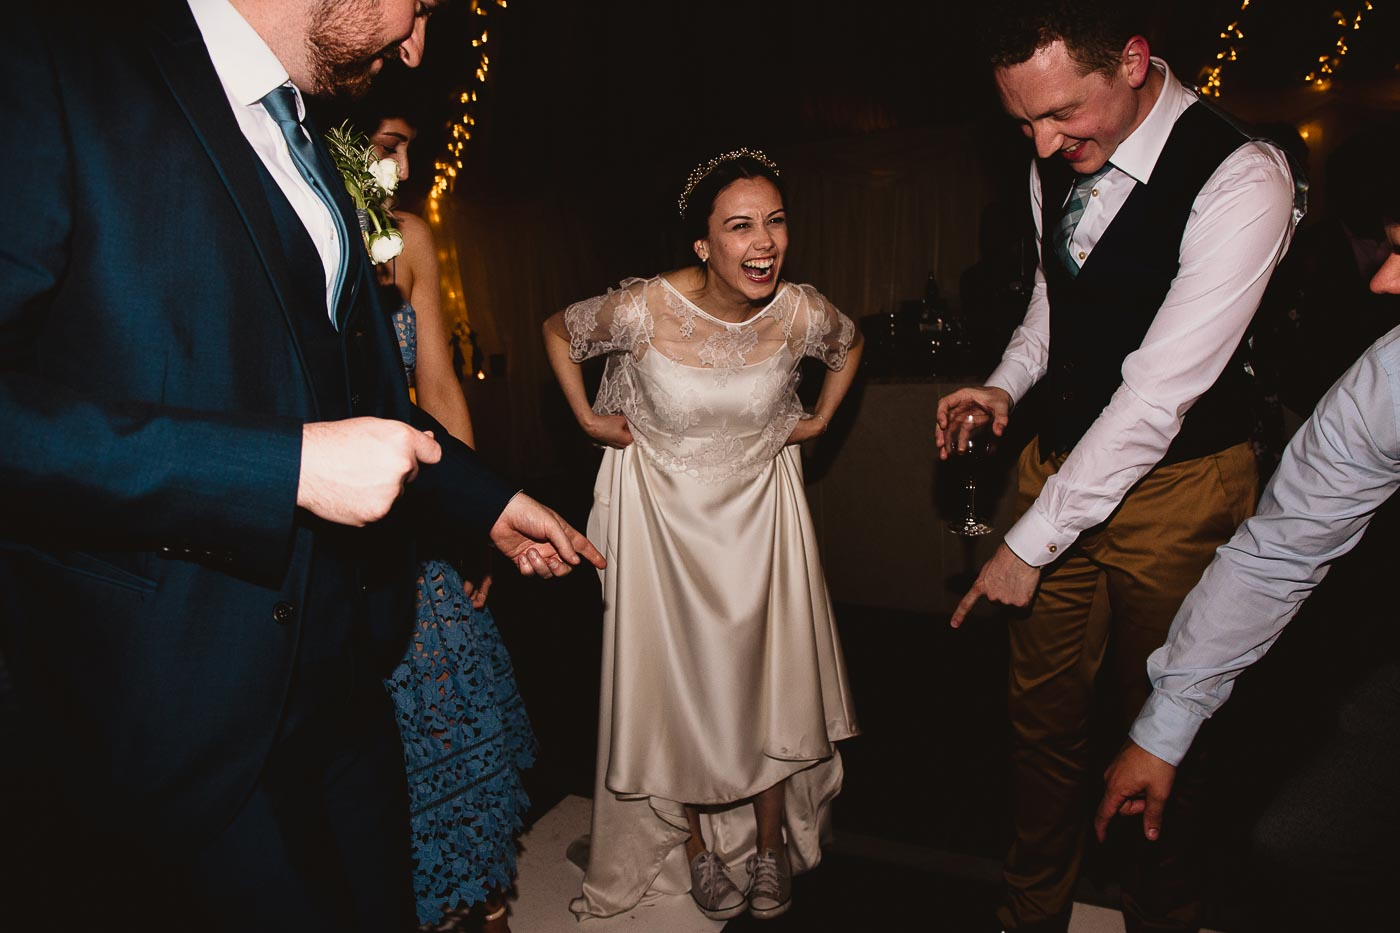 Bride showing her converse wedding trainers to guests, Relaxed Wedding in the Countryside